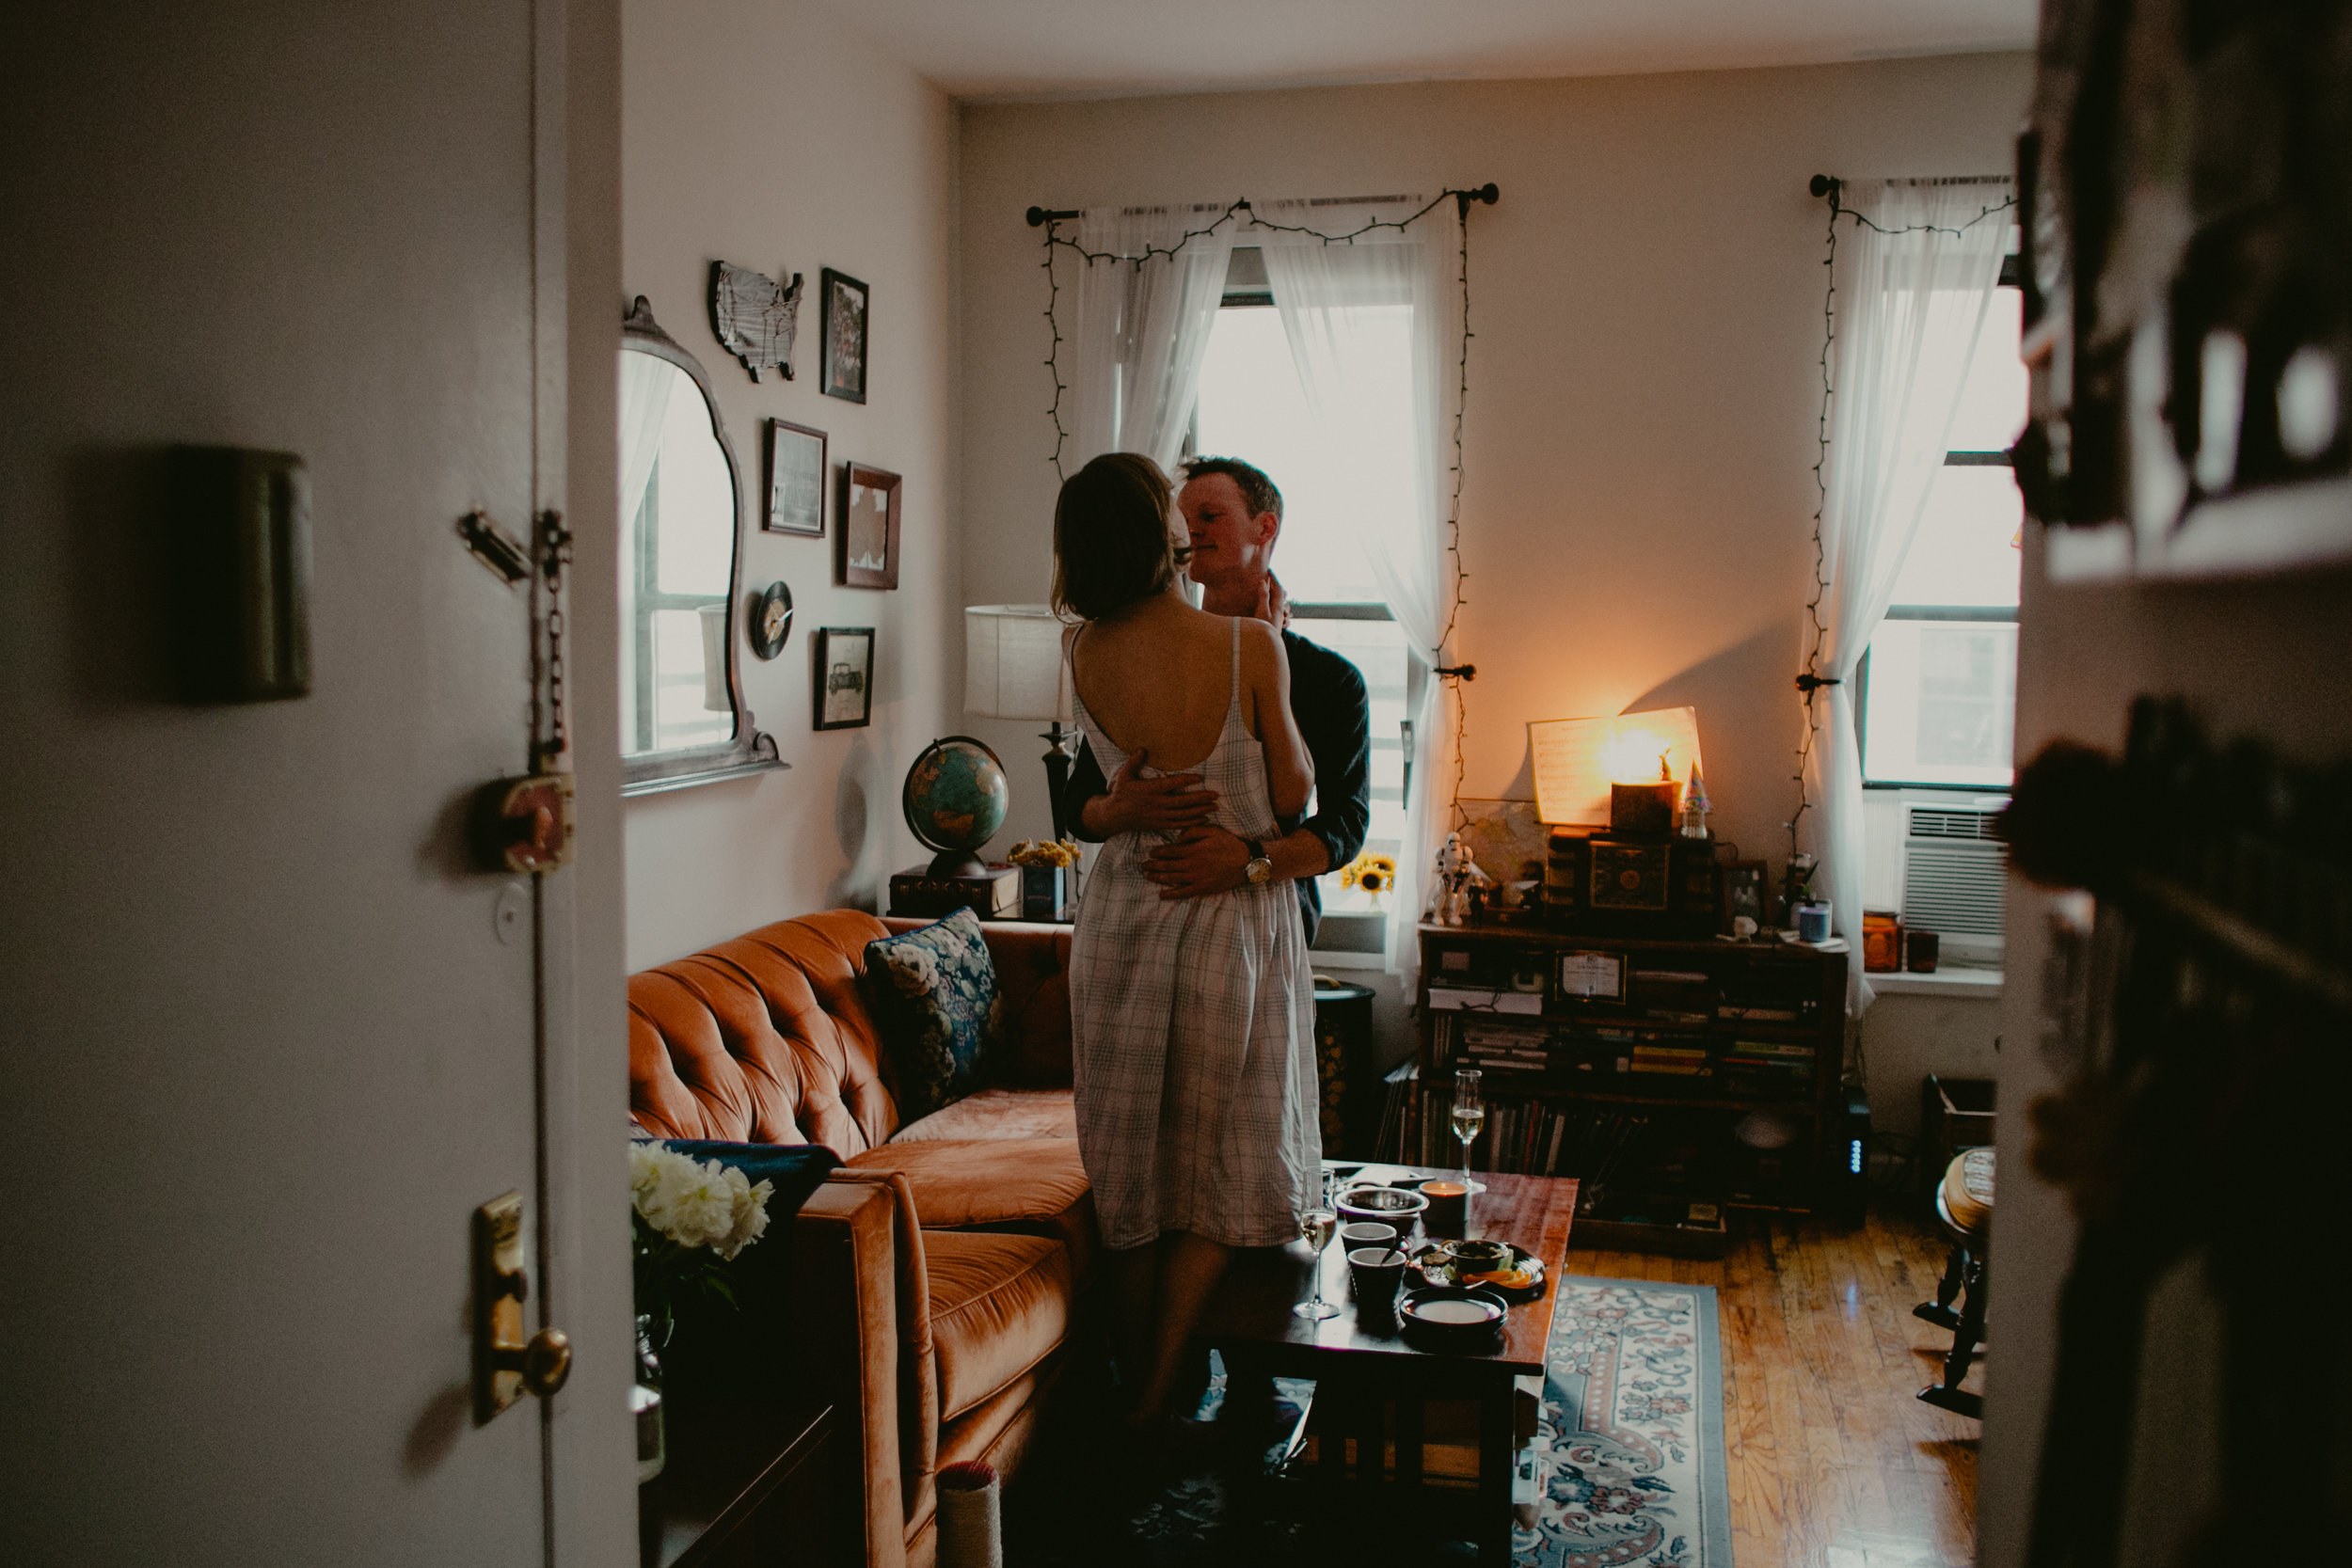 Brooklyn_Wedding_Photographer_Chellise_Michael_Photography-51.jpg